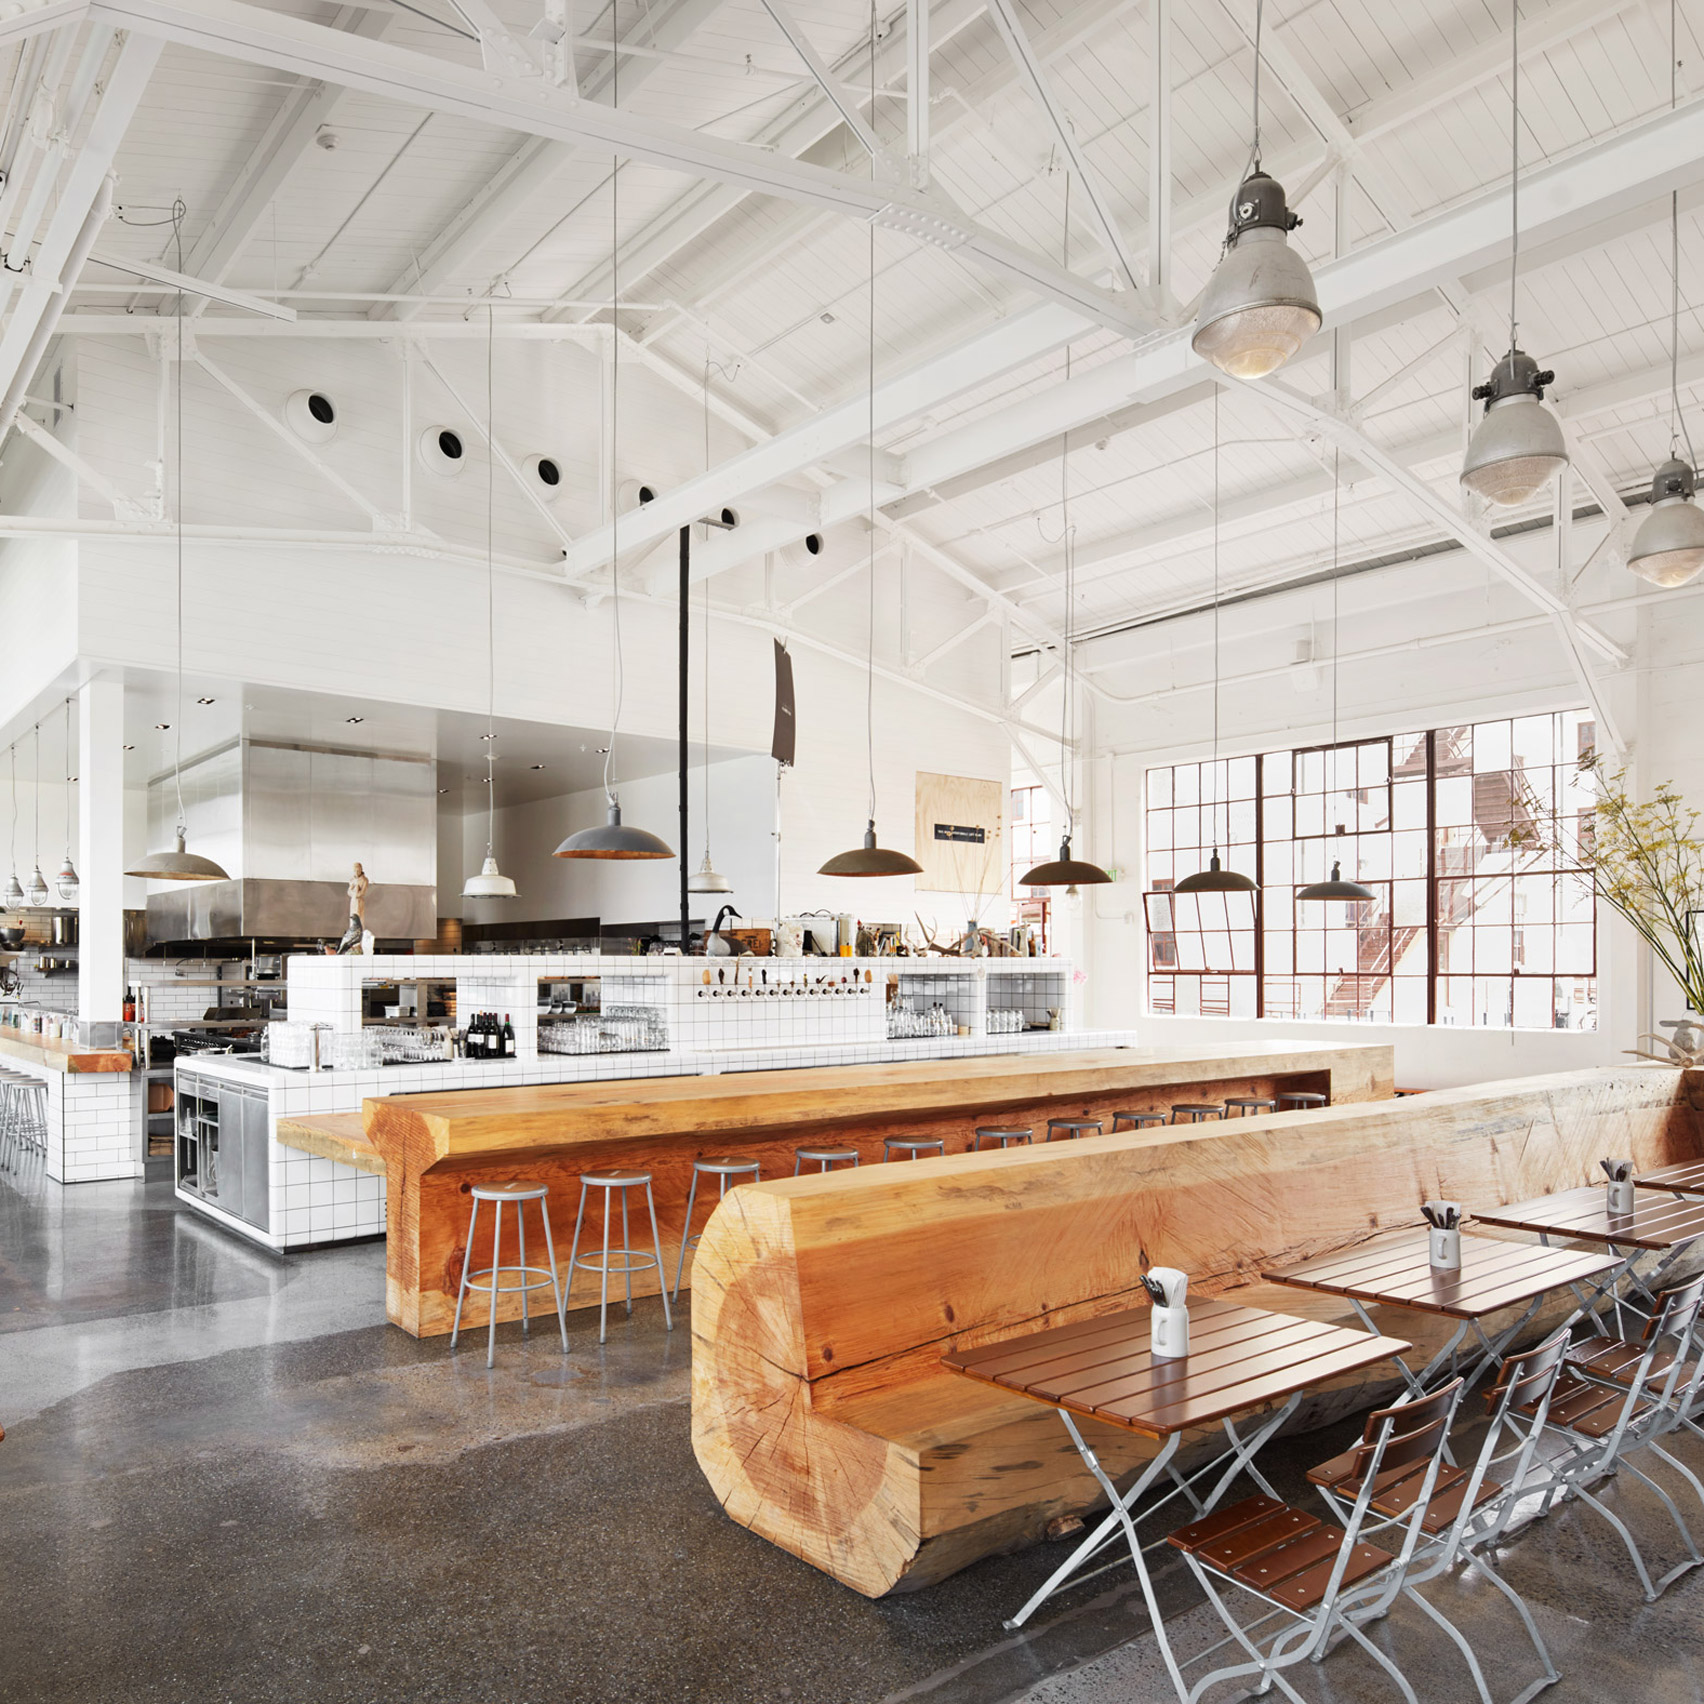 Huge Salvaged Trees Form Benches In San Francisco Restaurant